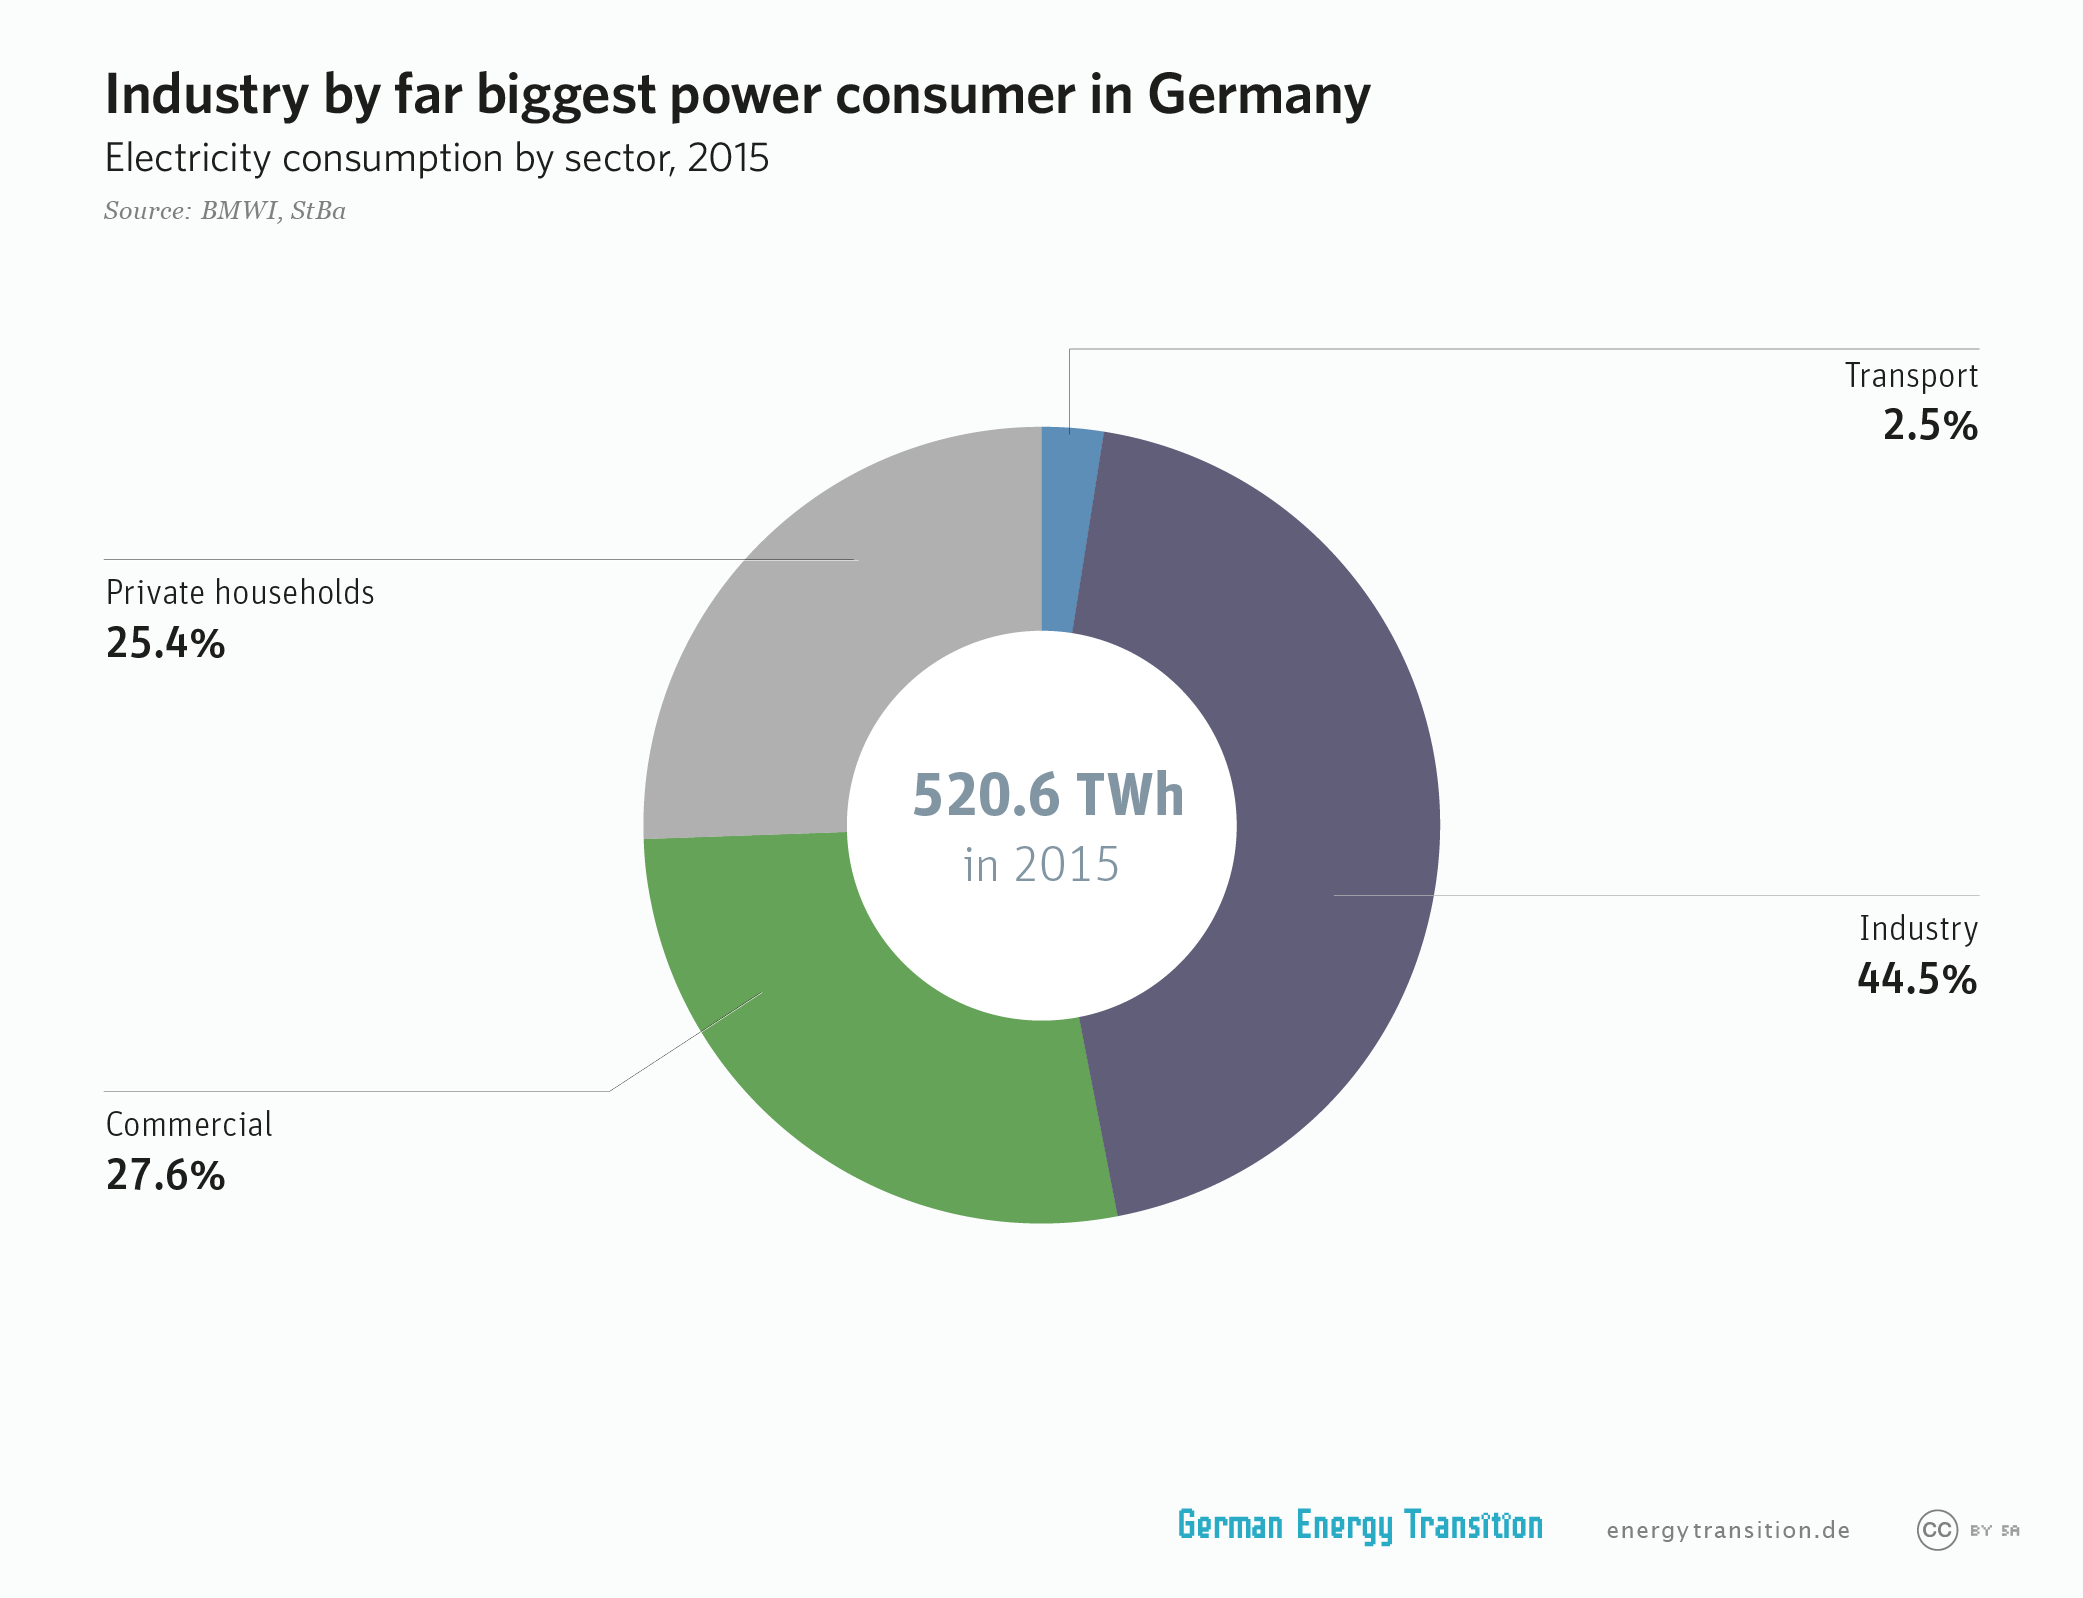 industry by far the biggest power consumer in Germany